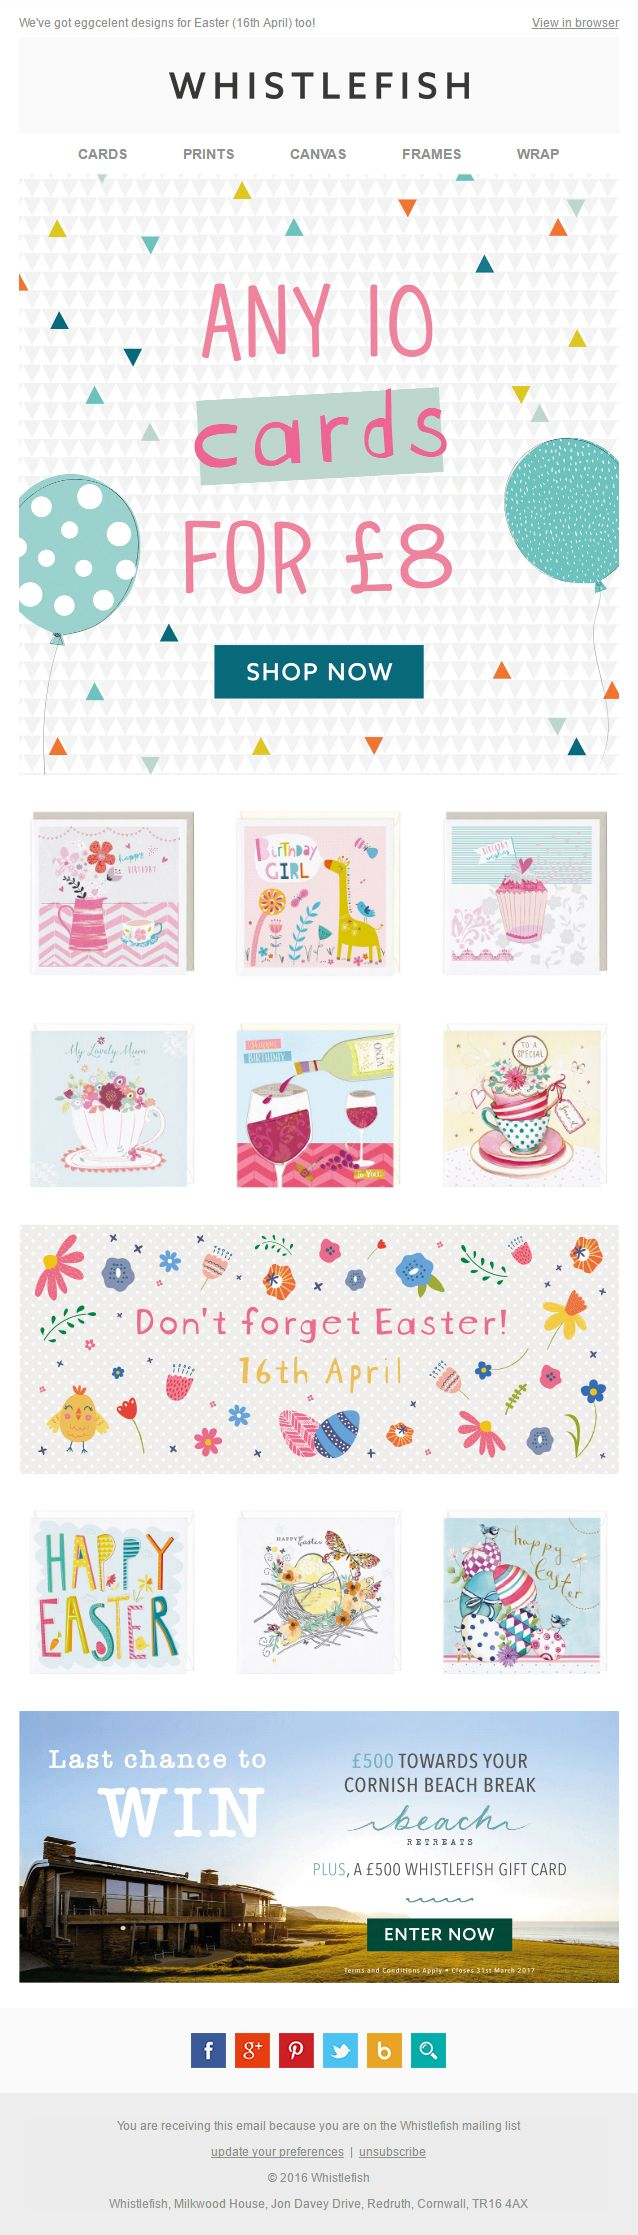 94 best easter emails images on pinterest email marketing easter email from whistlefish with offer emailmarketing email marketing easter cards negle Image collections